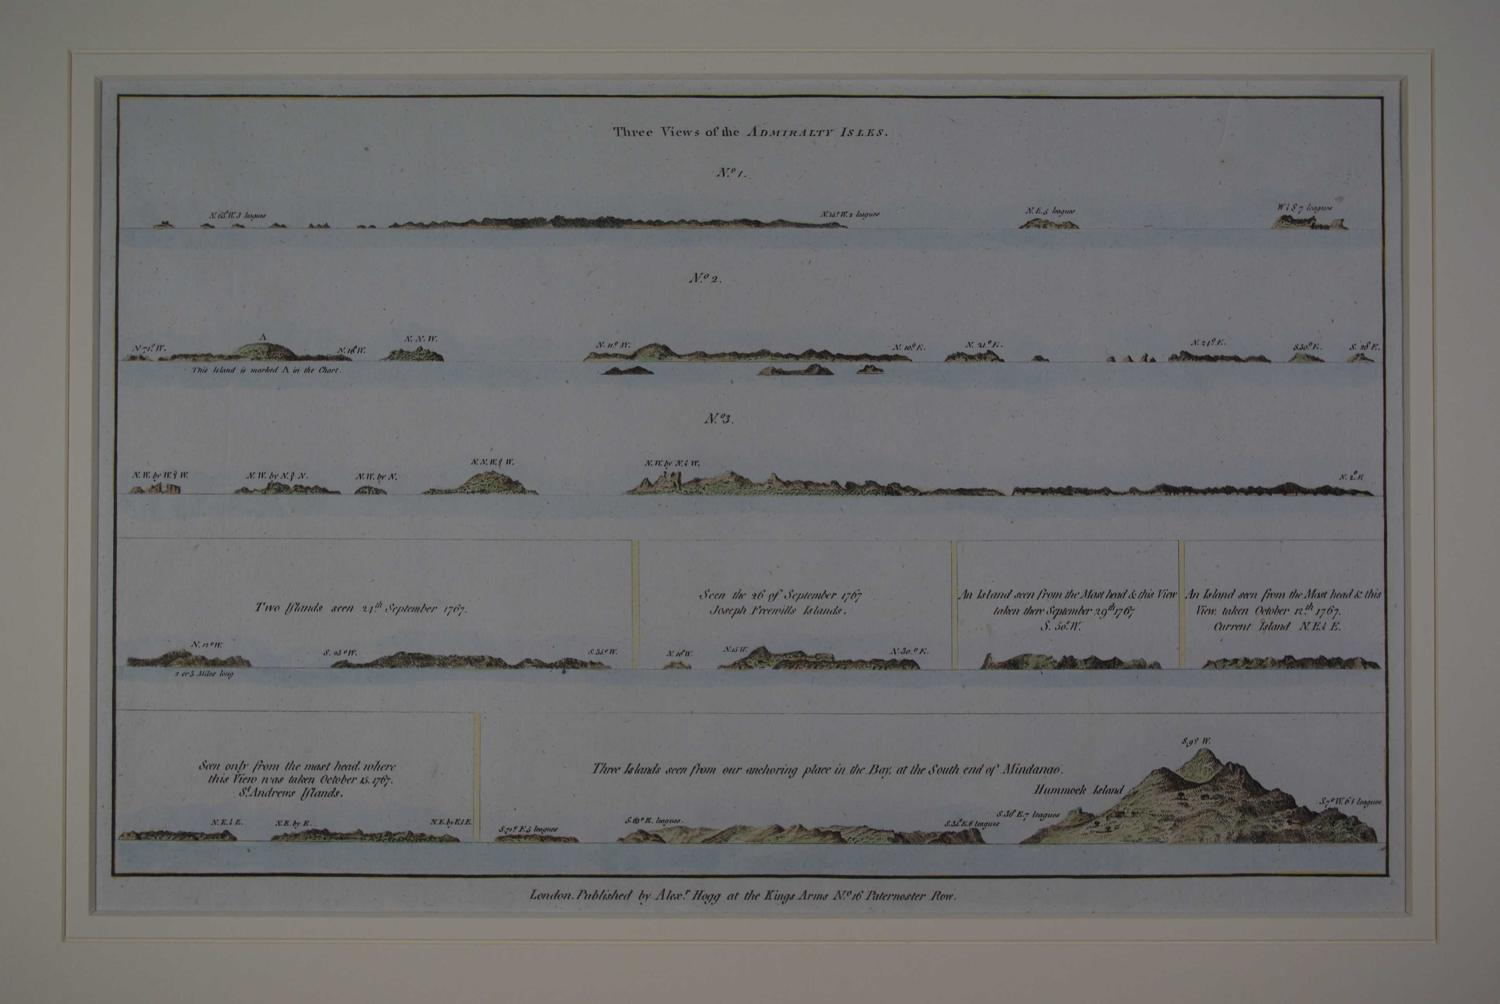 THREE VIEWS OF THE ADMIRALTY ISLES St. ANDREW'S ISLANDS, JOSEPH FREEWI